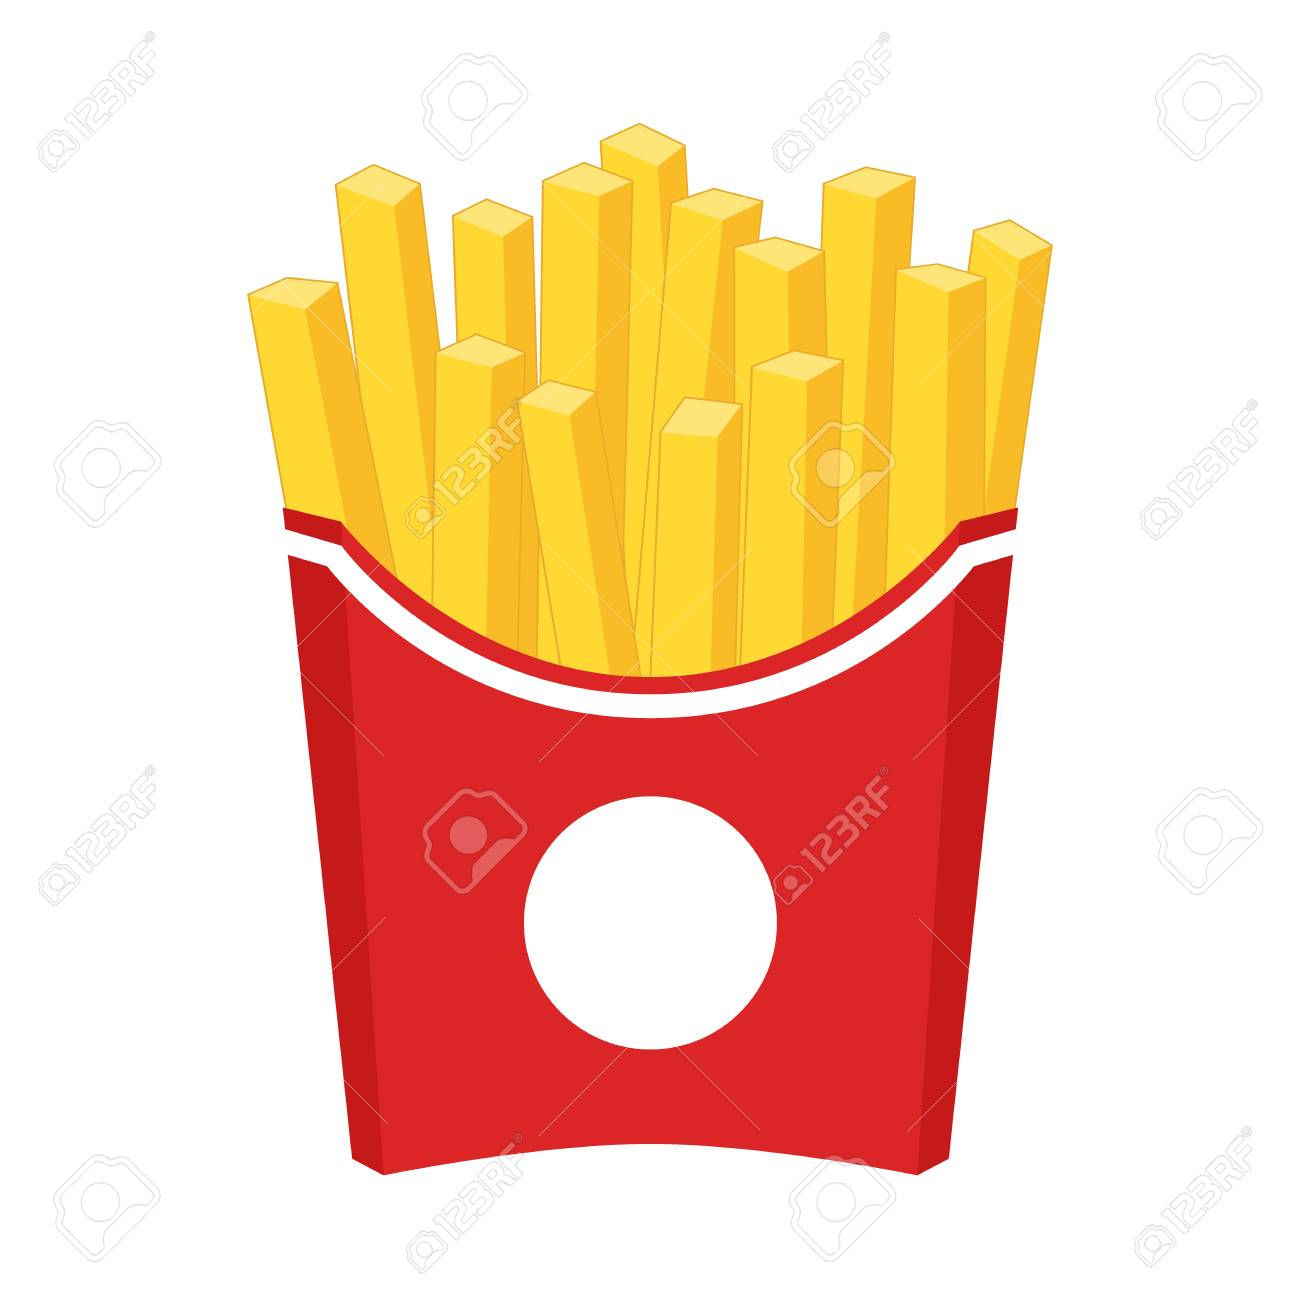 French fries cartoon clipart. French fries in a red carton paper...